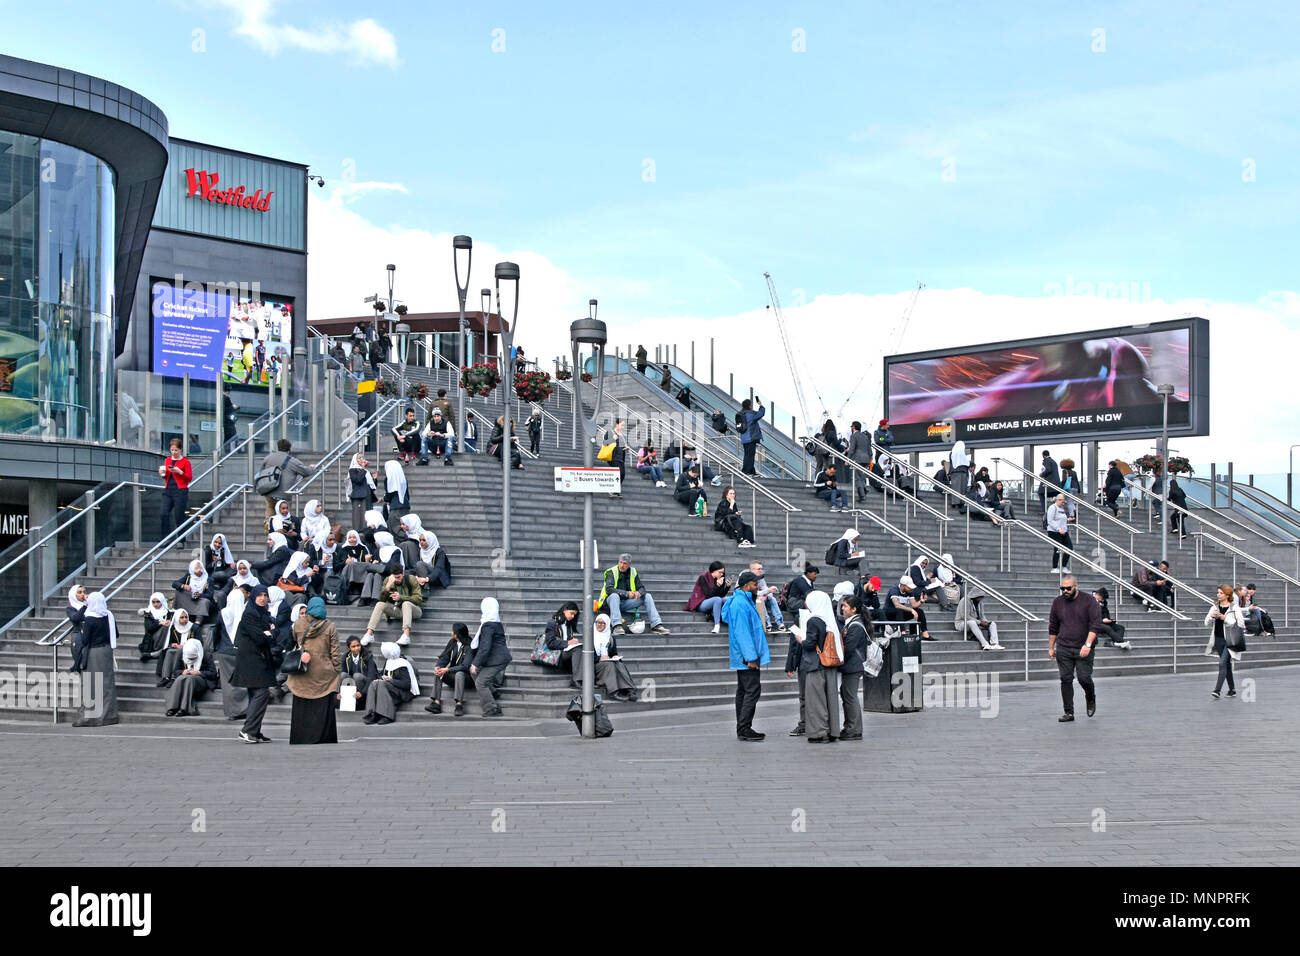 Girl school children in uniform many wearing hijab with staff on steps up to Westfield shopping centre multicultural Stratford Newham East London UK - Stock Image